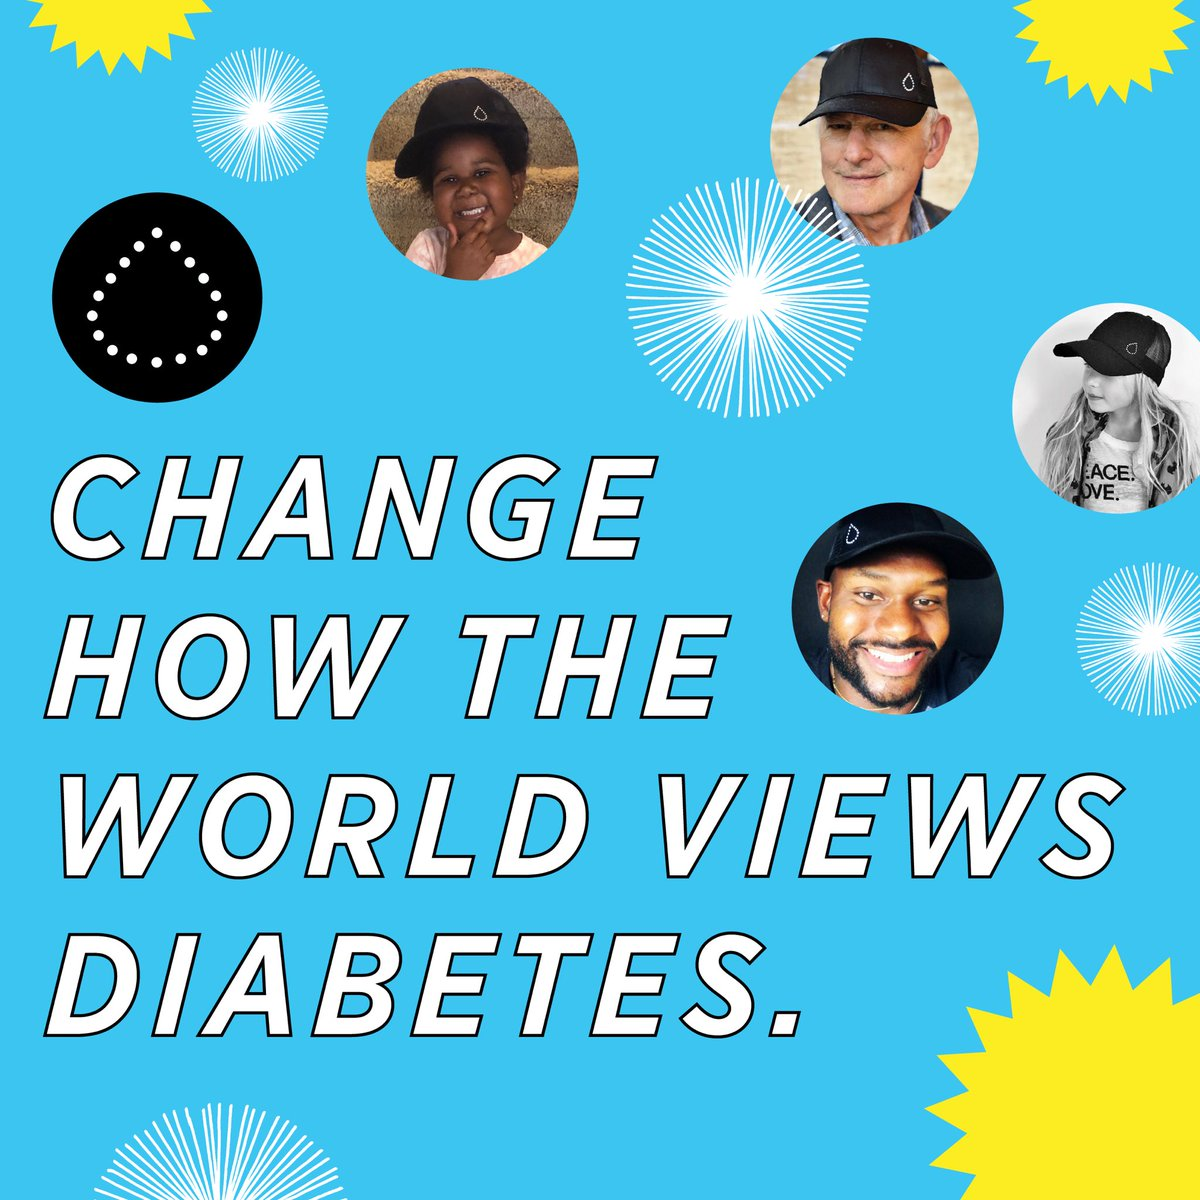 Today is #WorldDiabetesDay. @BeyondType1 is working to raise awareness about what Type 1 & Type 2 diabetes are REALLY like. Type 1 diabetes is part of my everyday life. It comes with highs & lows and requires vigilance, but doesn't keep me from doing what I love. #TheDropSpotted